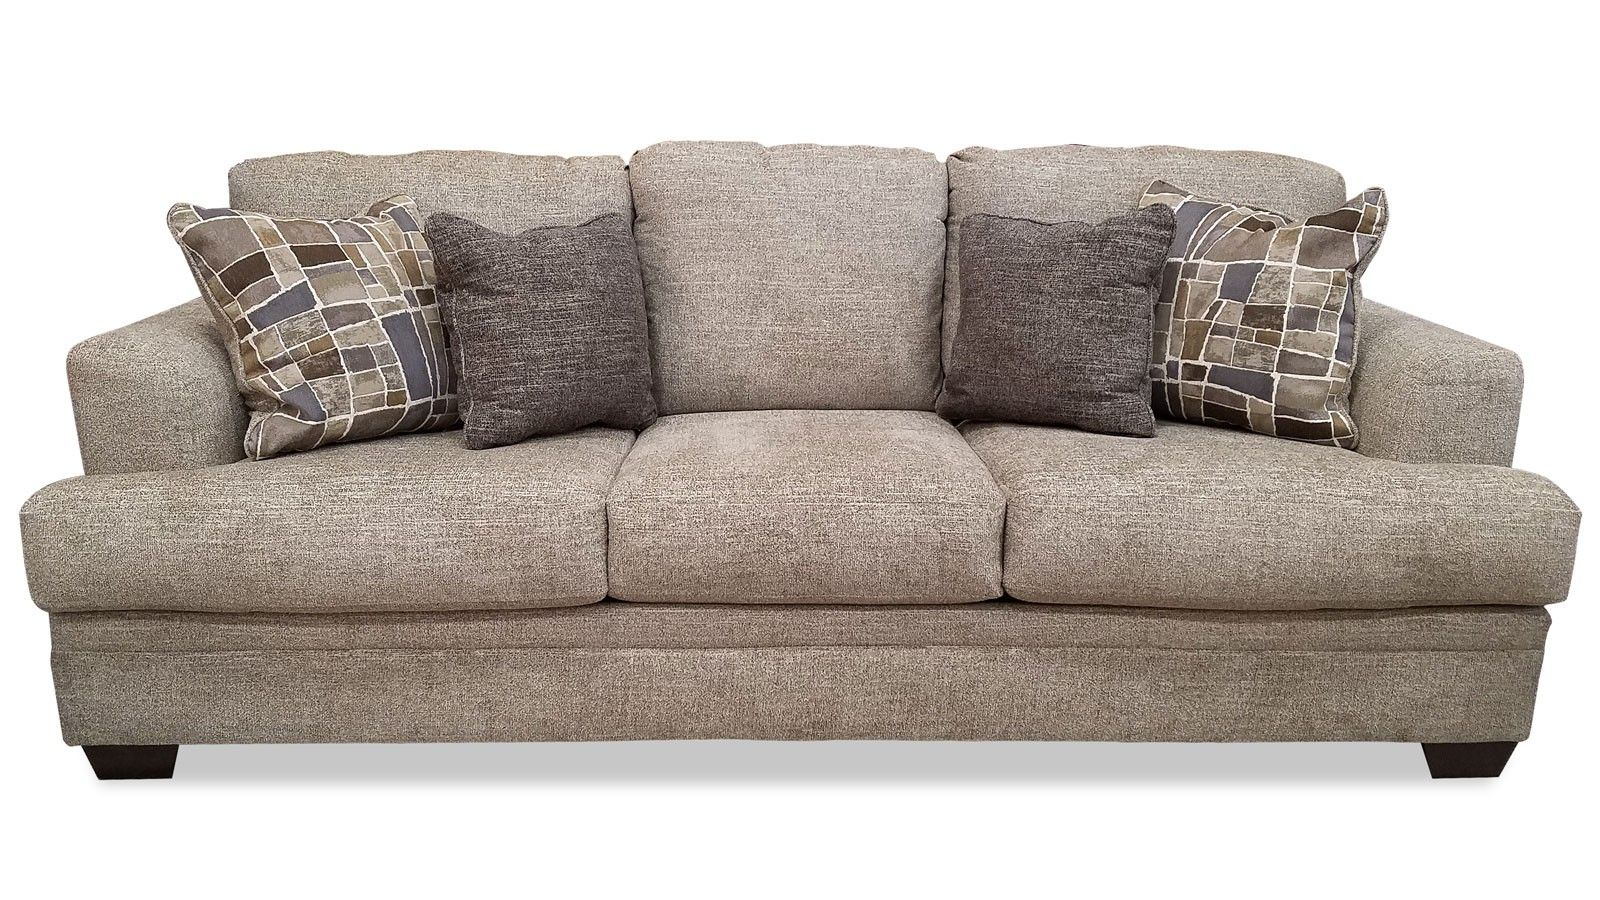 Gallery Furniture Barrish Sisal Sofa Front View For The Home